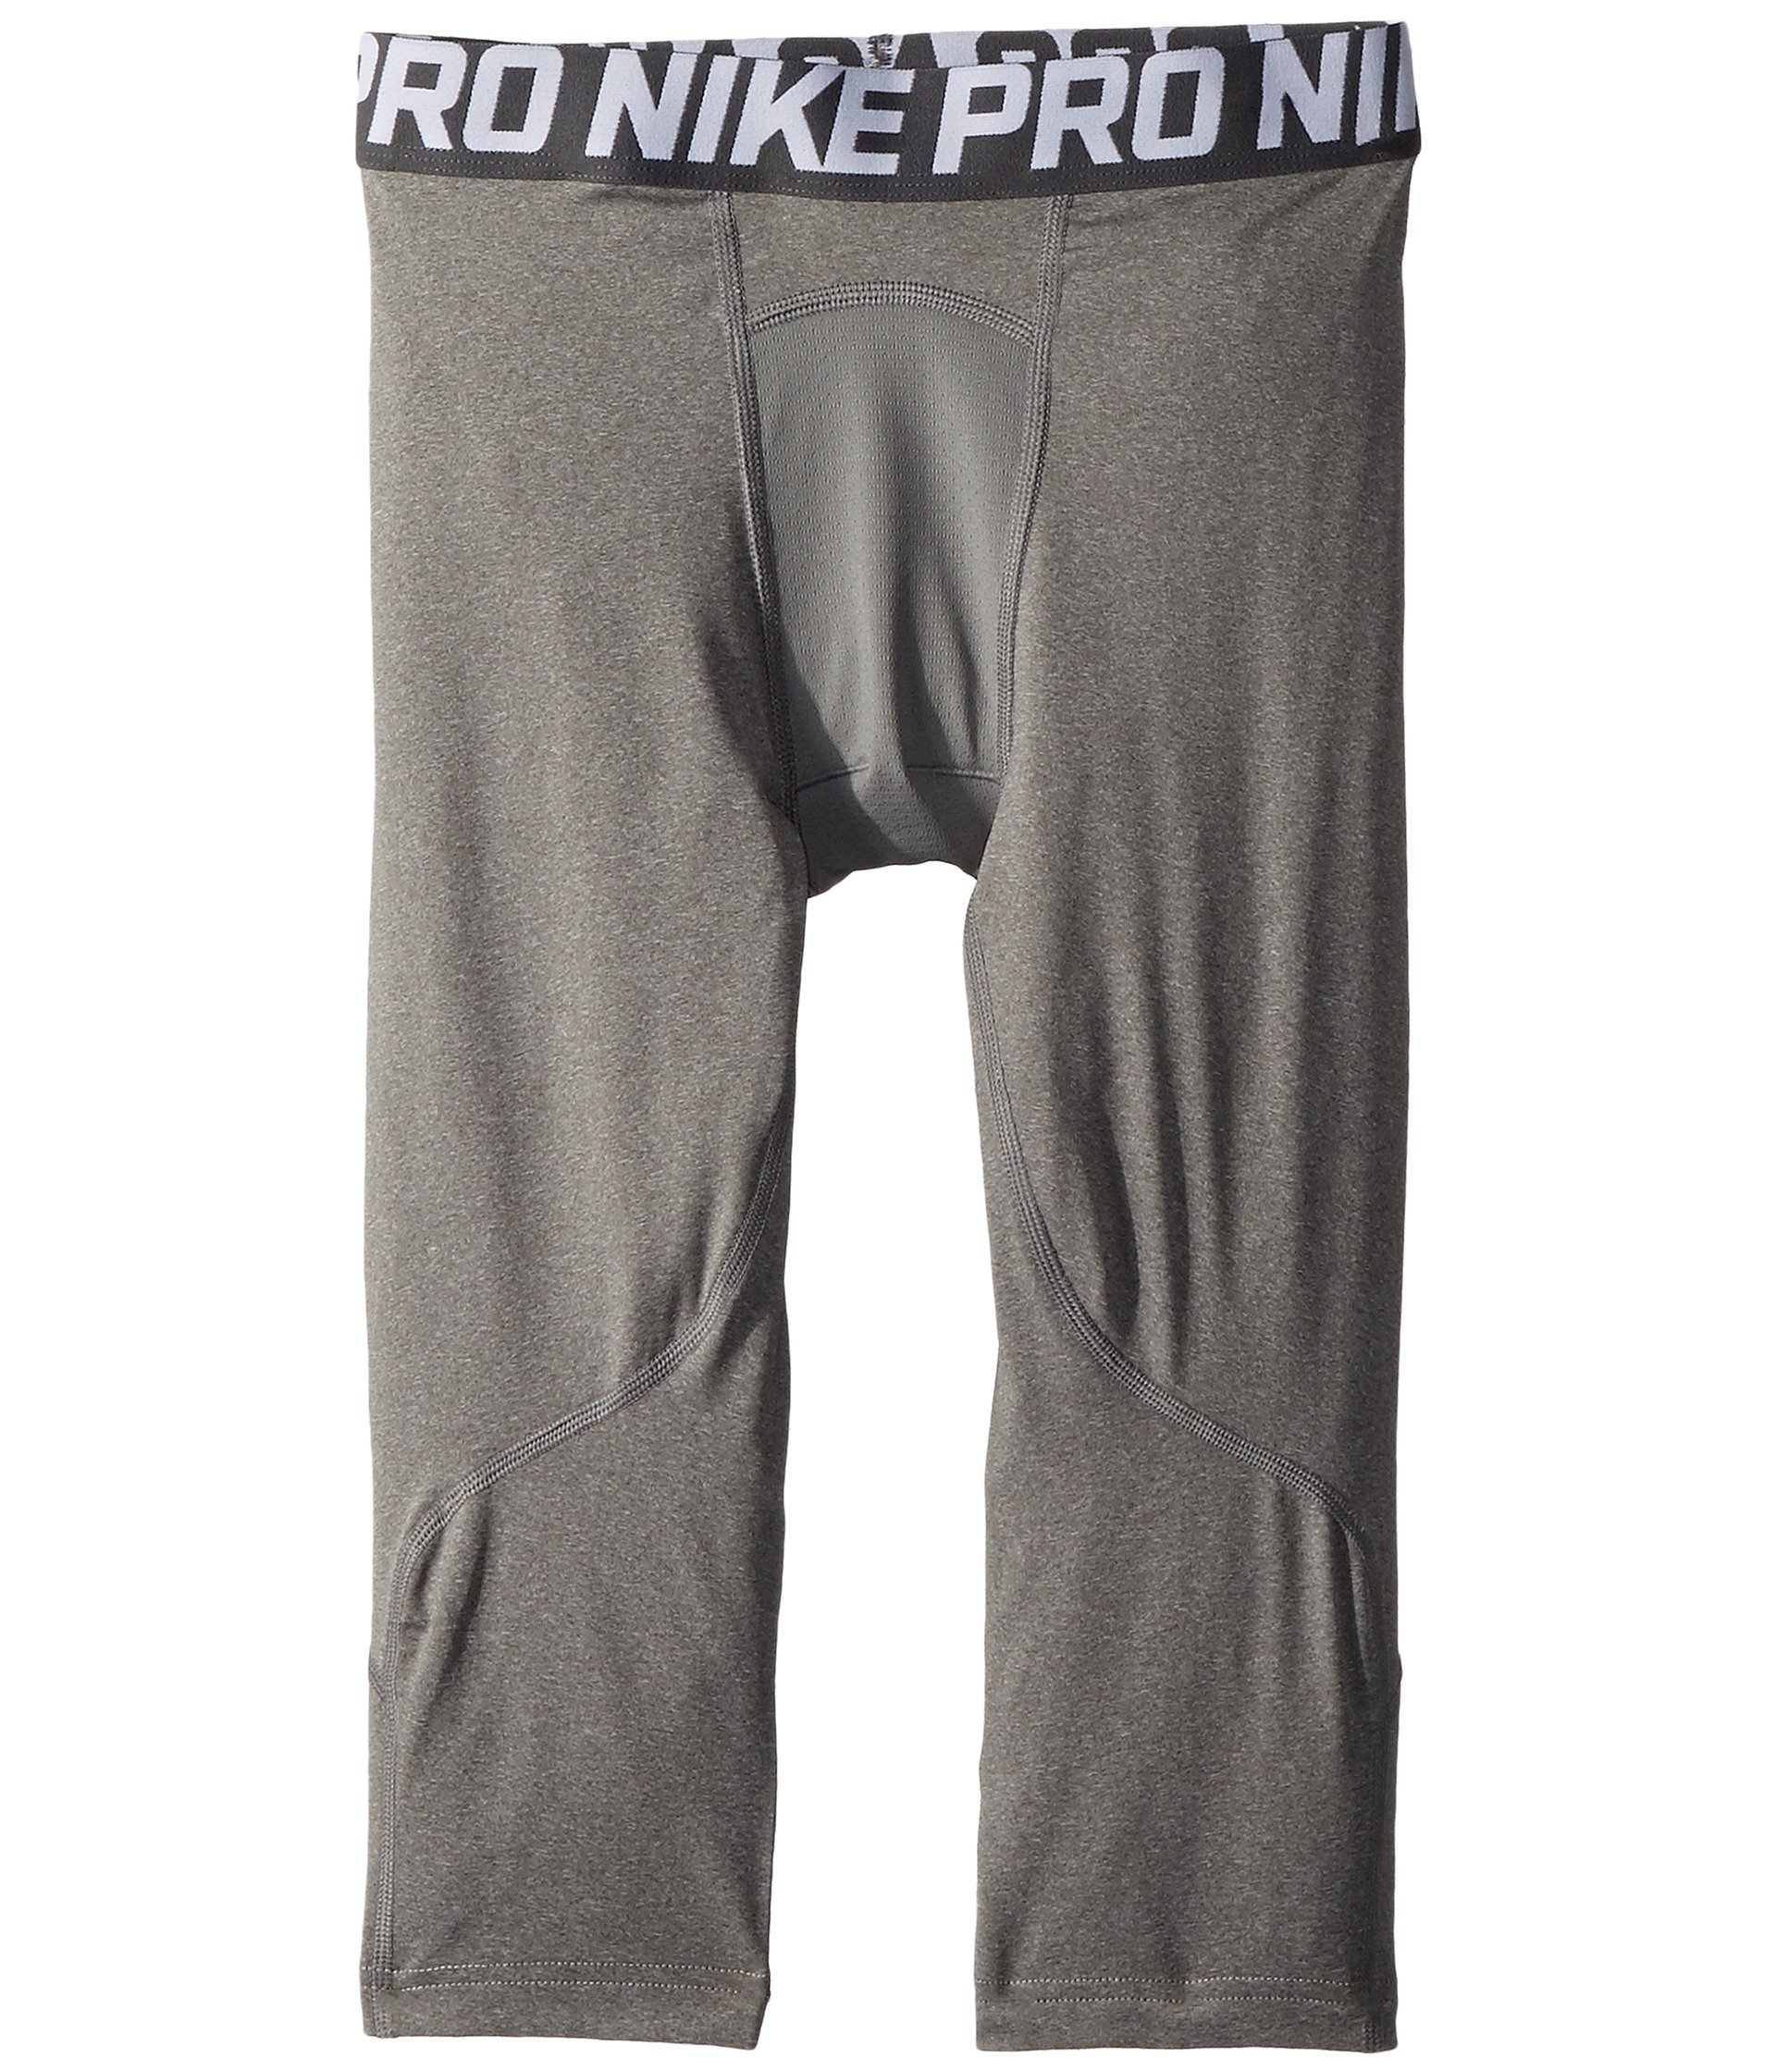 Nike Pro Boys 3/4 Training Tights (Large) Carbon Heather by Nike